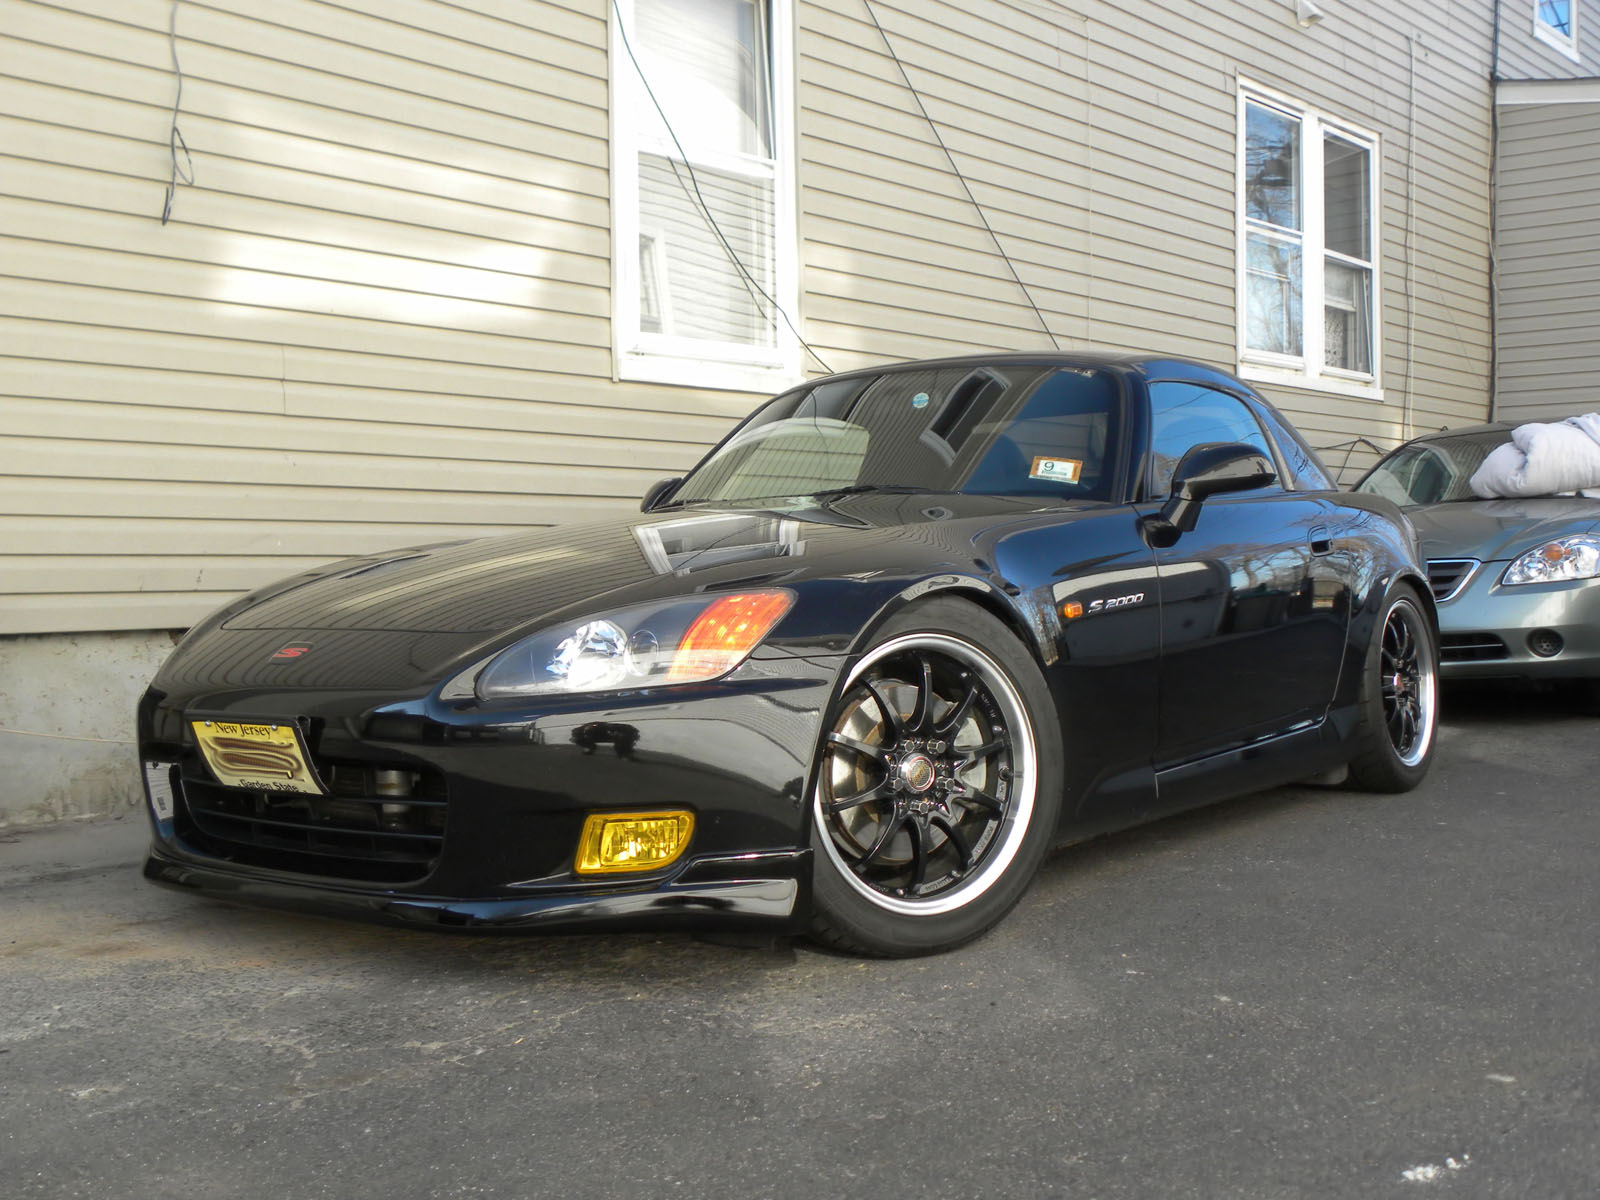 2002 honda s2000 for sale new jersey new jersey. Black Bedroom Furniture Sets. Home Design Ideas